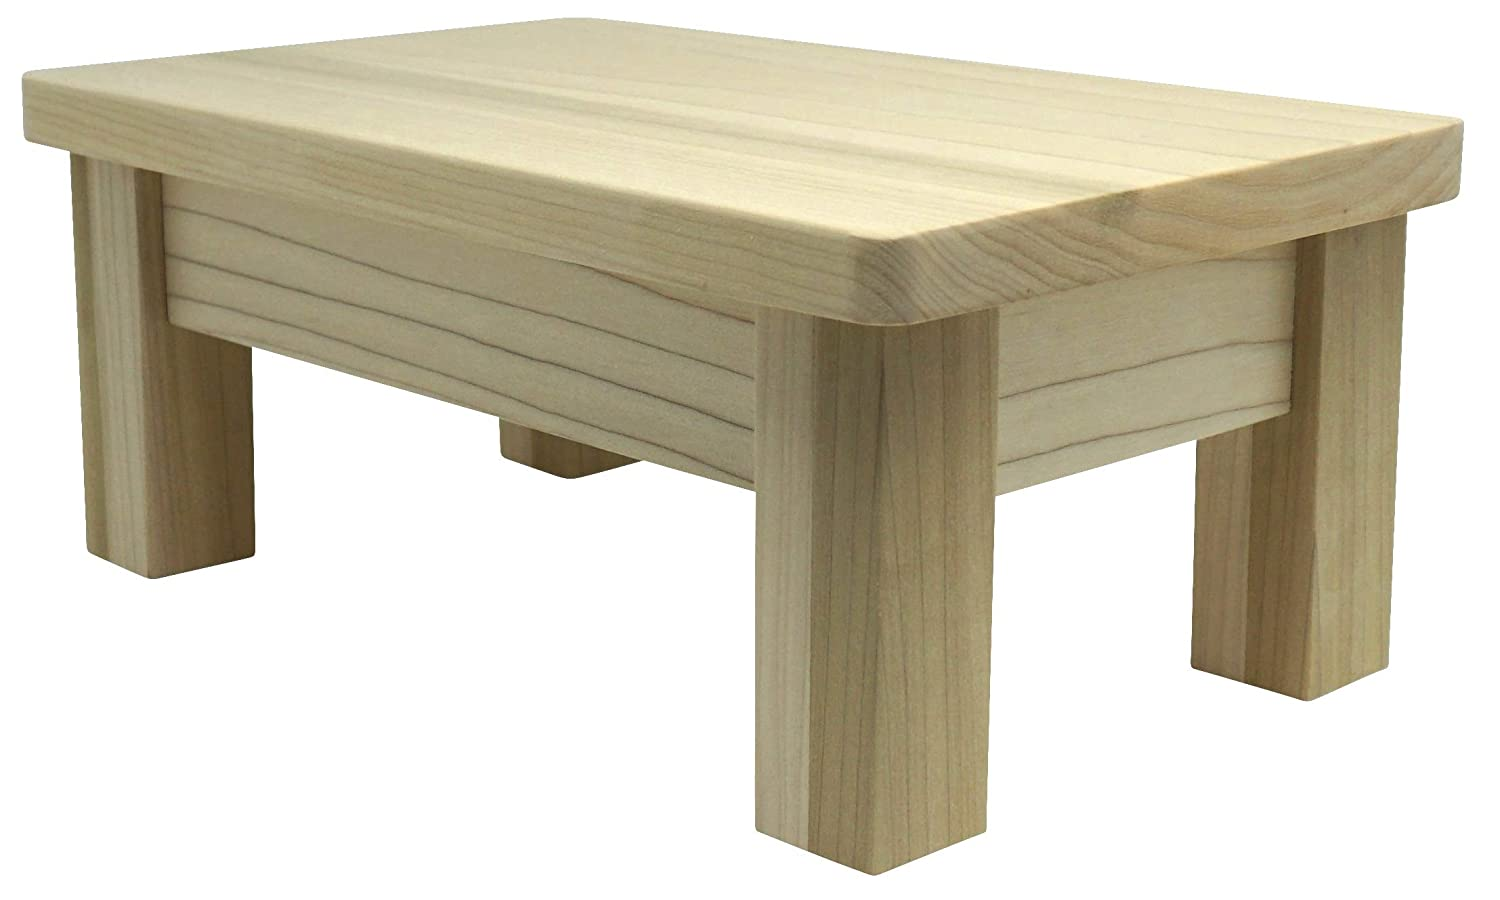 HollandCraft - 6 Wooden Foot Stool - Unfinished - Hidden Wood Dowels (No Screws, Staples or Nails)